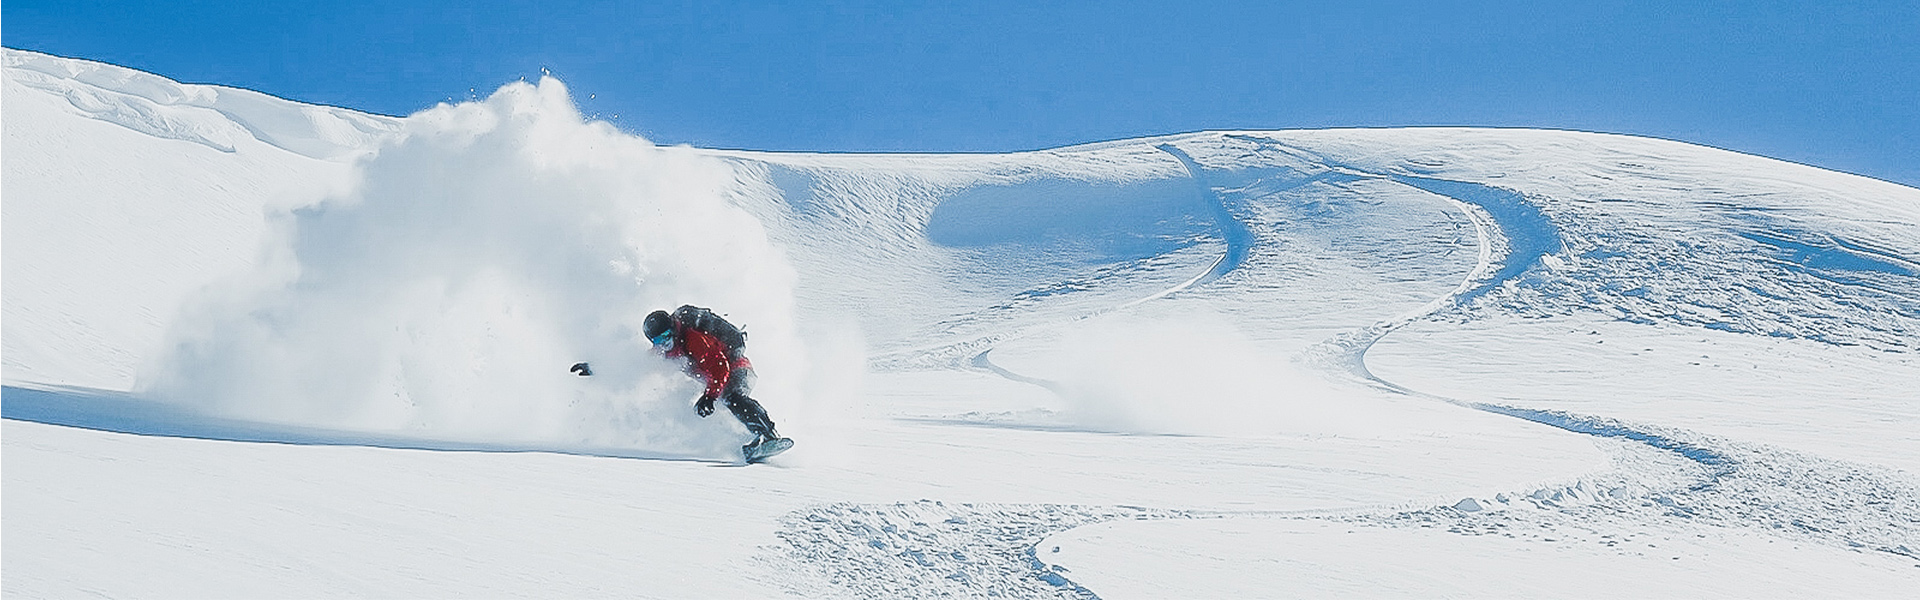 Snowboarding Chile Powder First Tours